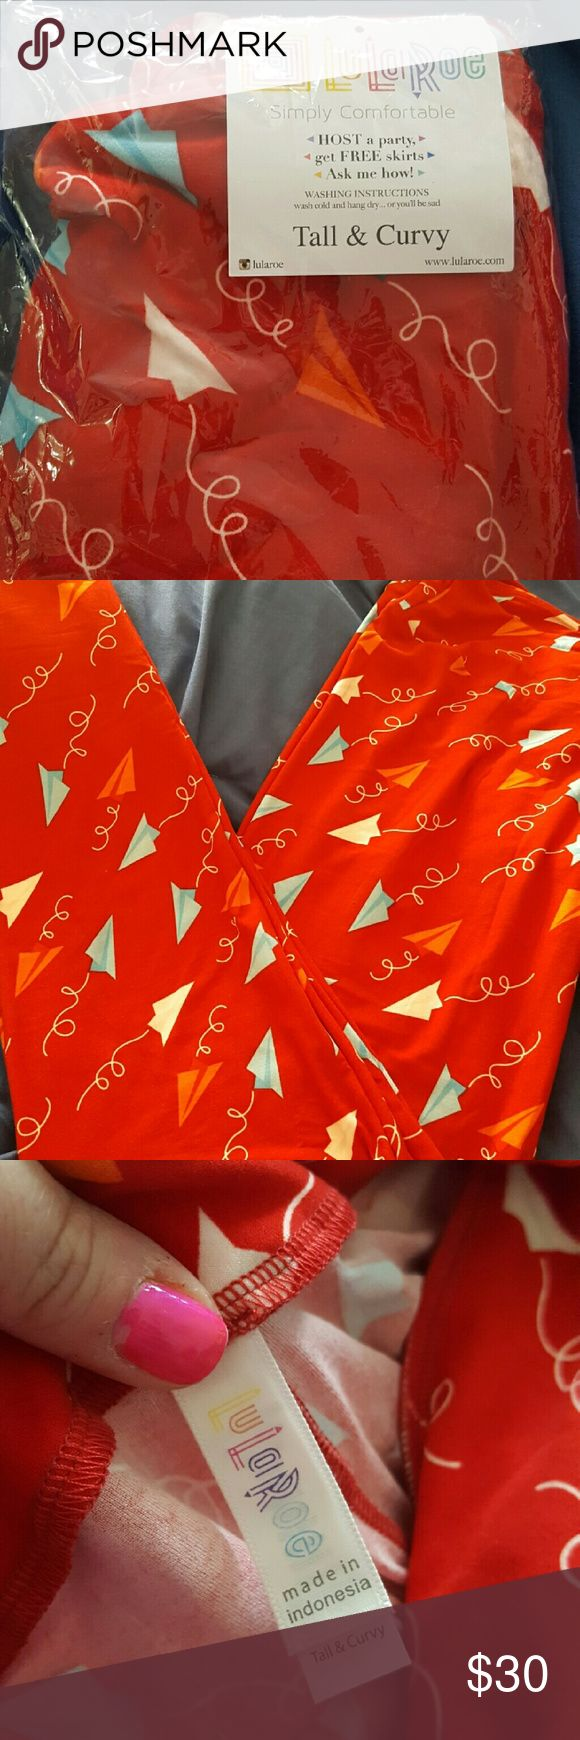 NWT TC Americana Paper Airplane Legginga Adorable red leggings with baby blue and white paper airplanes. From the Americana capsule collection. LuLaRoe Pants Leggings